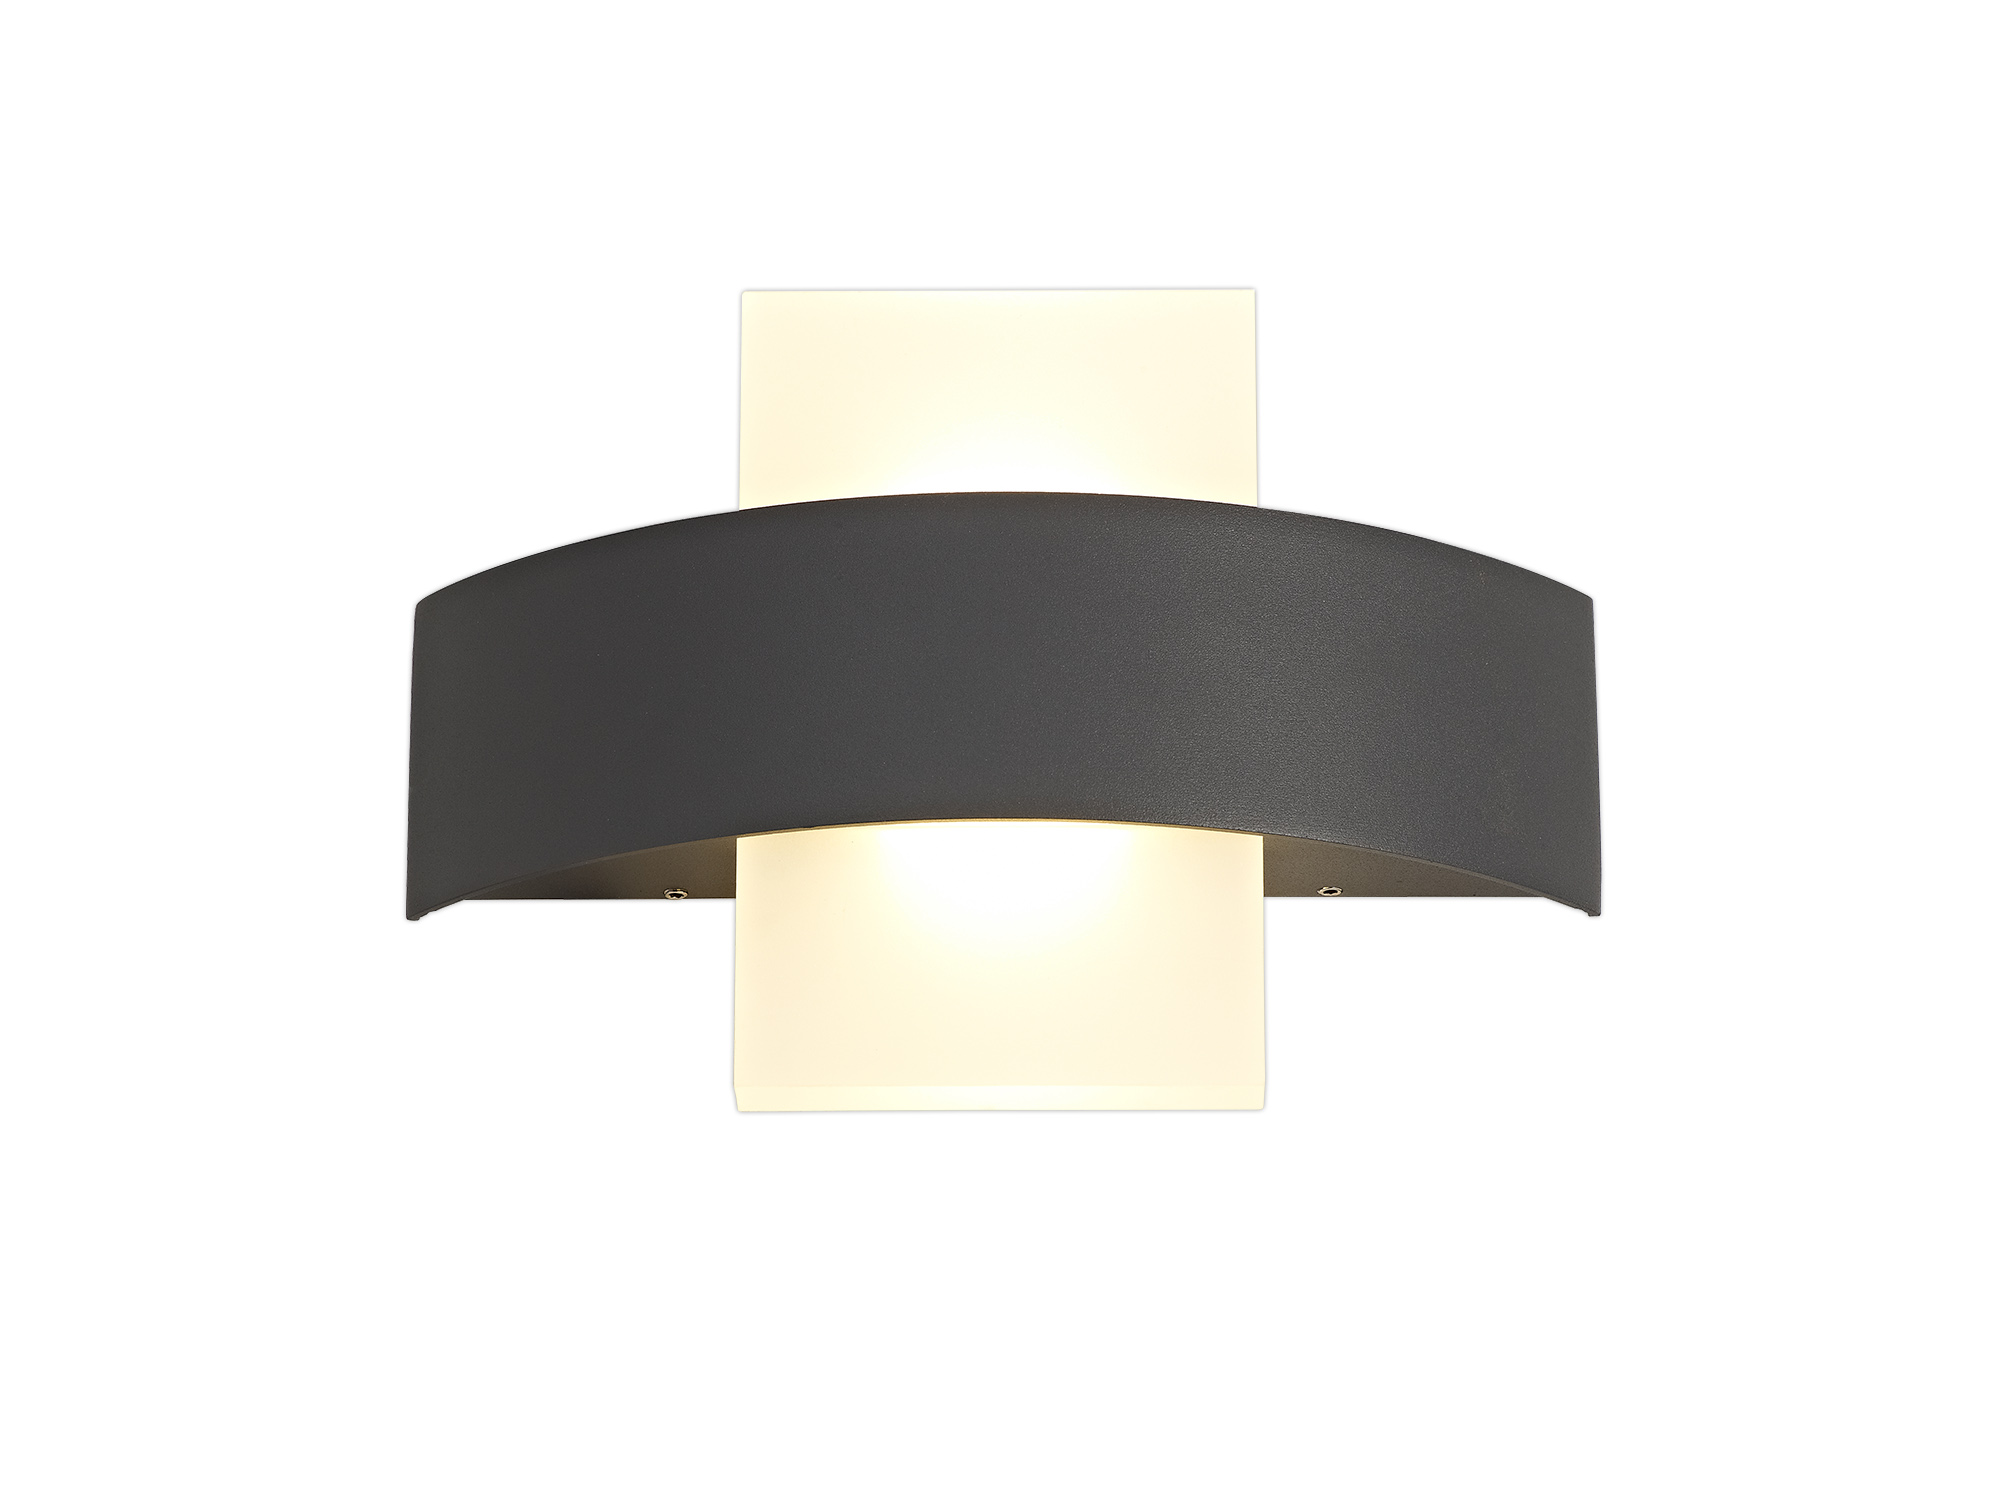 Up & Downward Lighting Wall Lamp, 2 x 5W LED, 3000K, 850lm, IP54, Anthracite, 3yrs Warranty